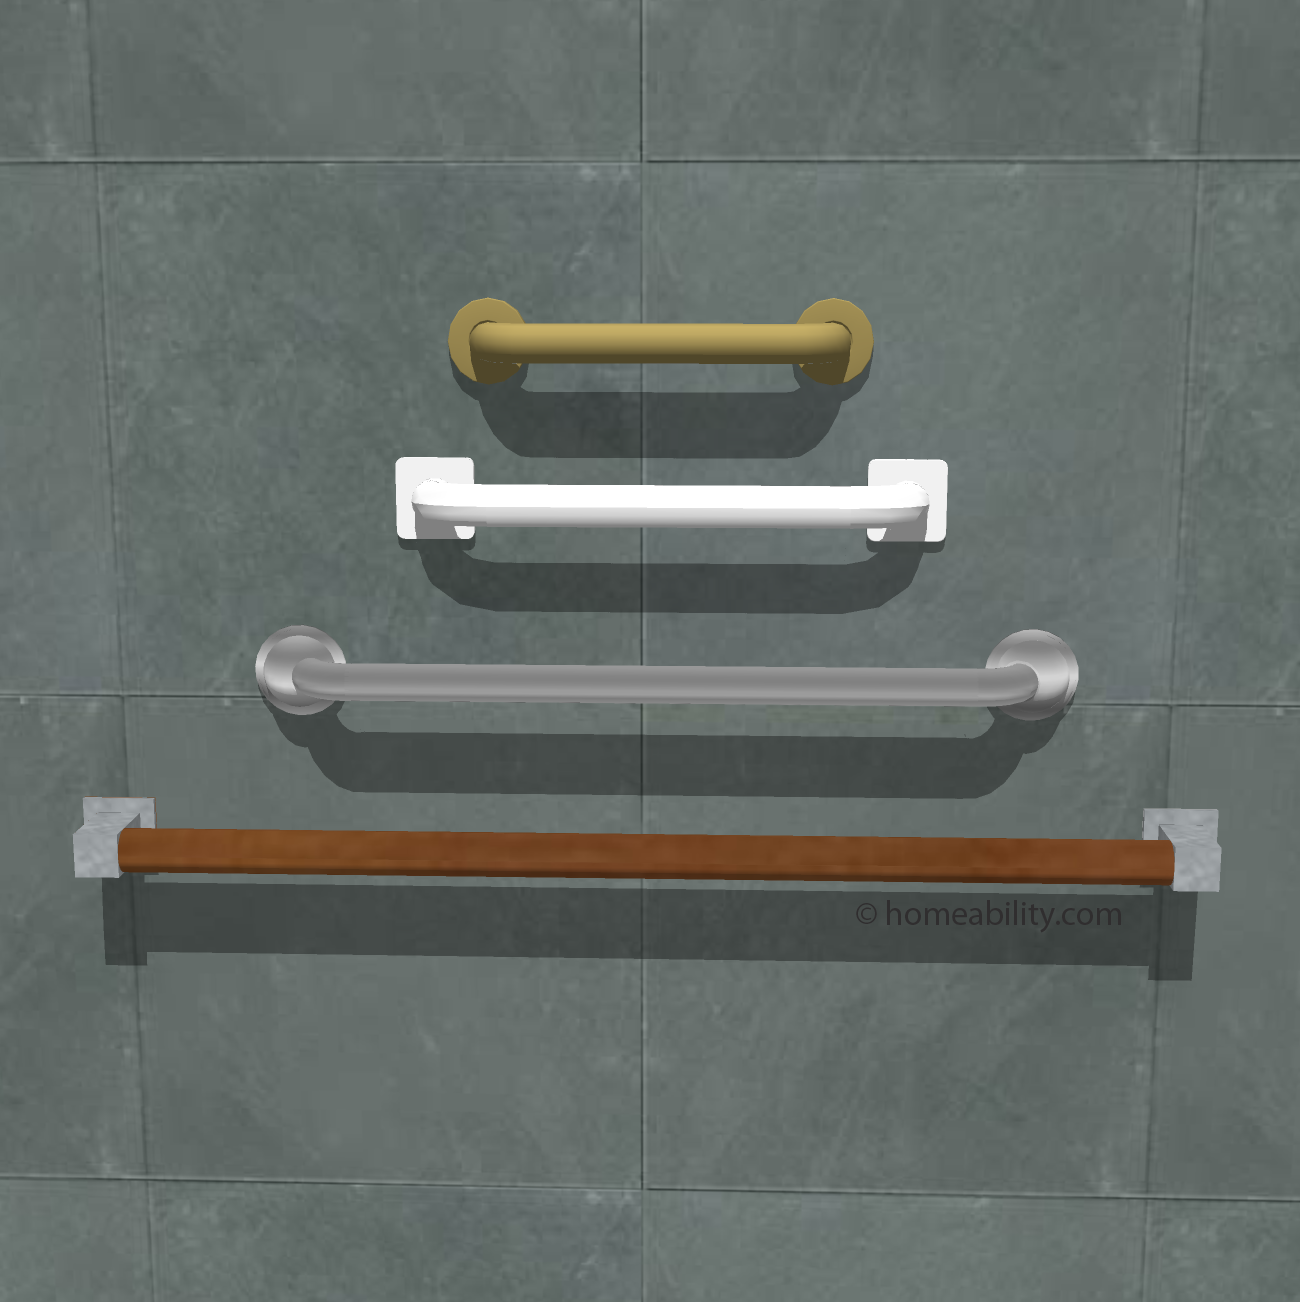 Grab Bars: Which Type is Best? | homeability.com